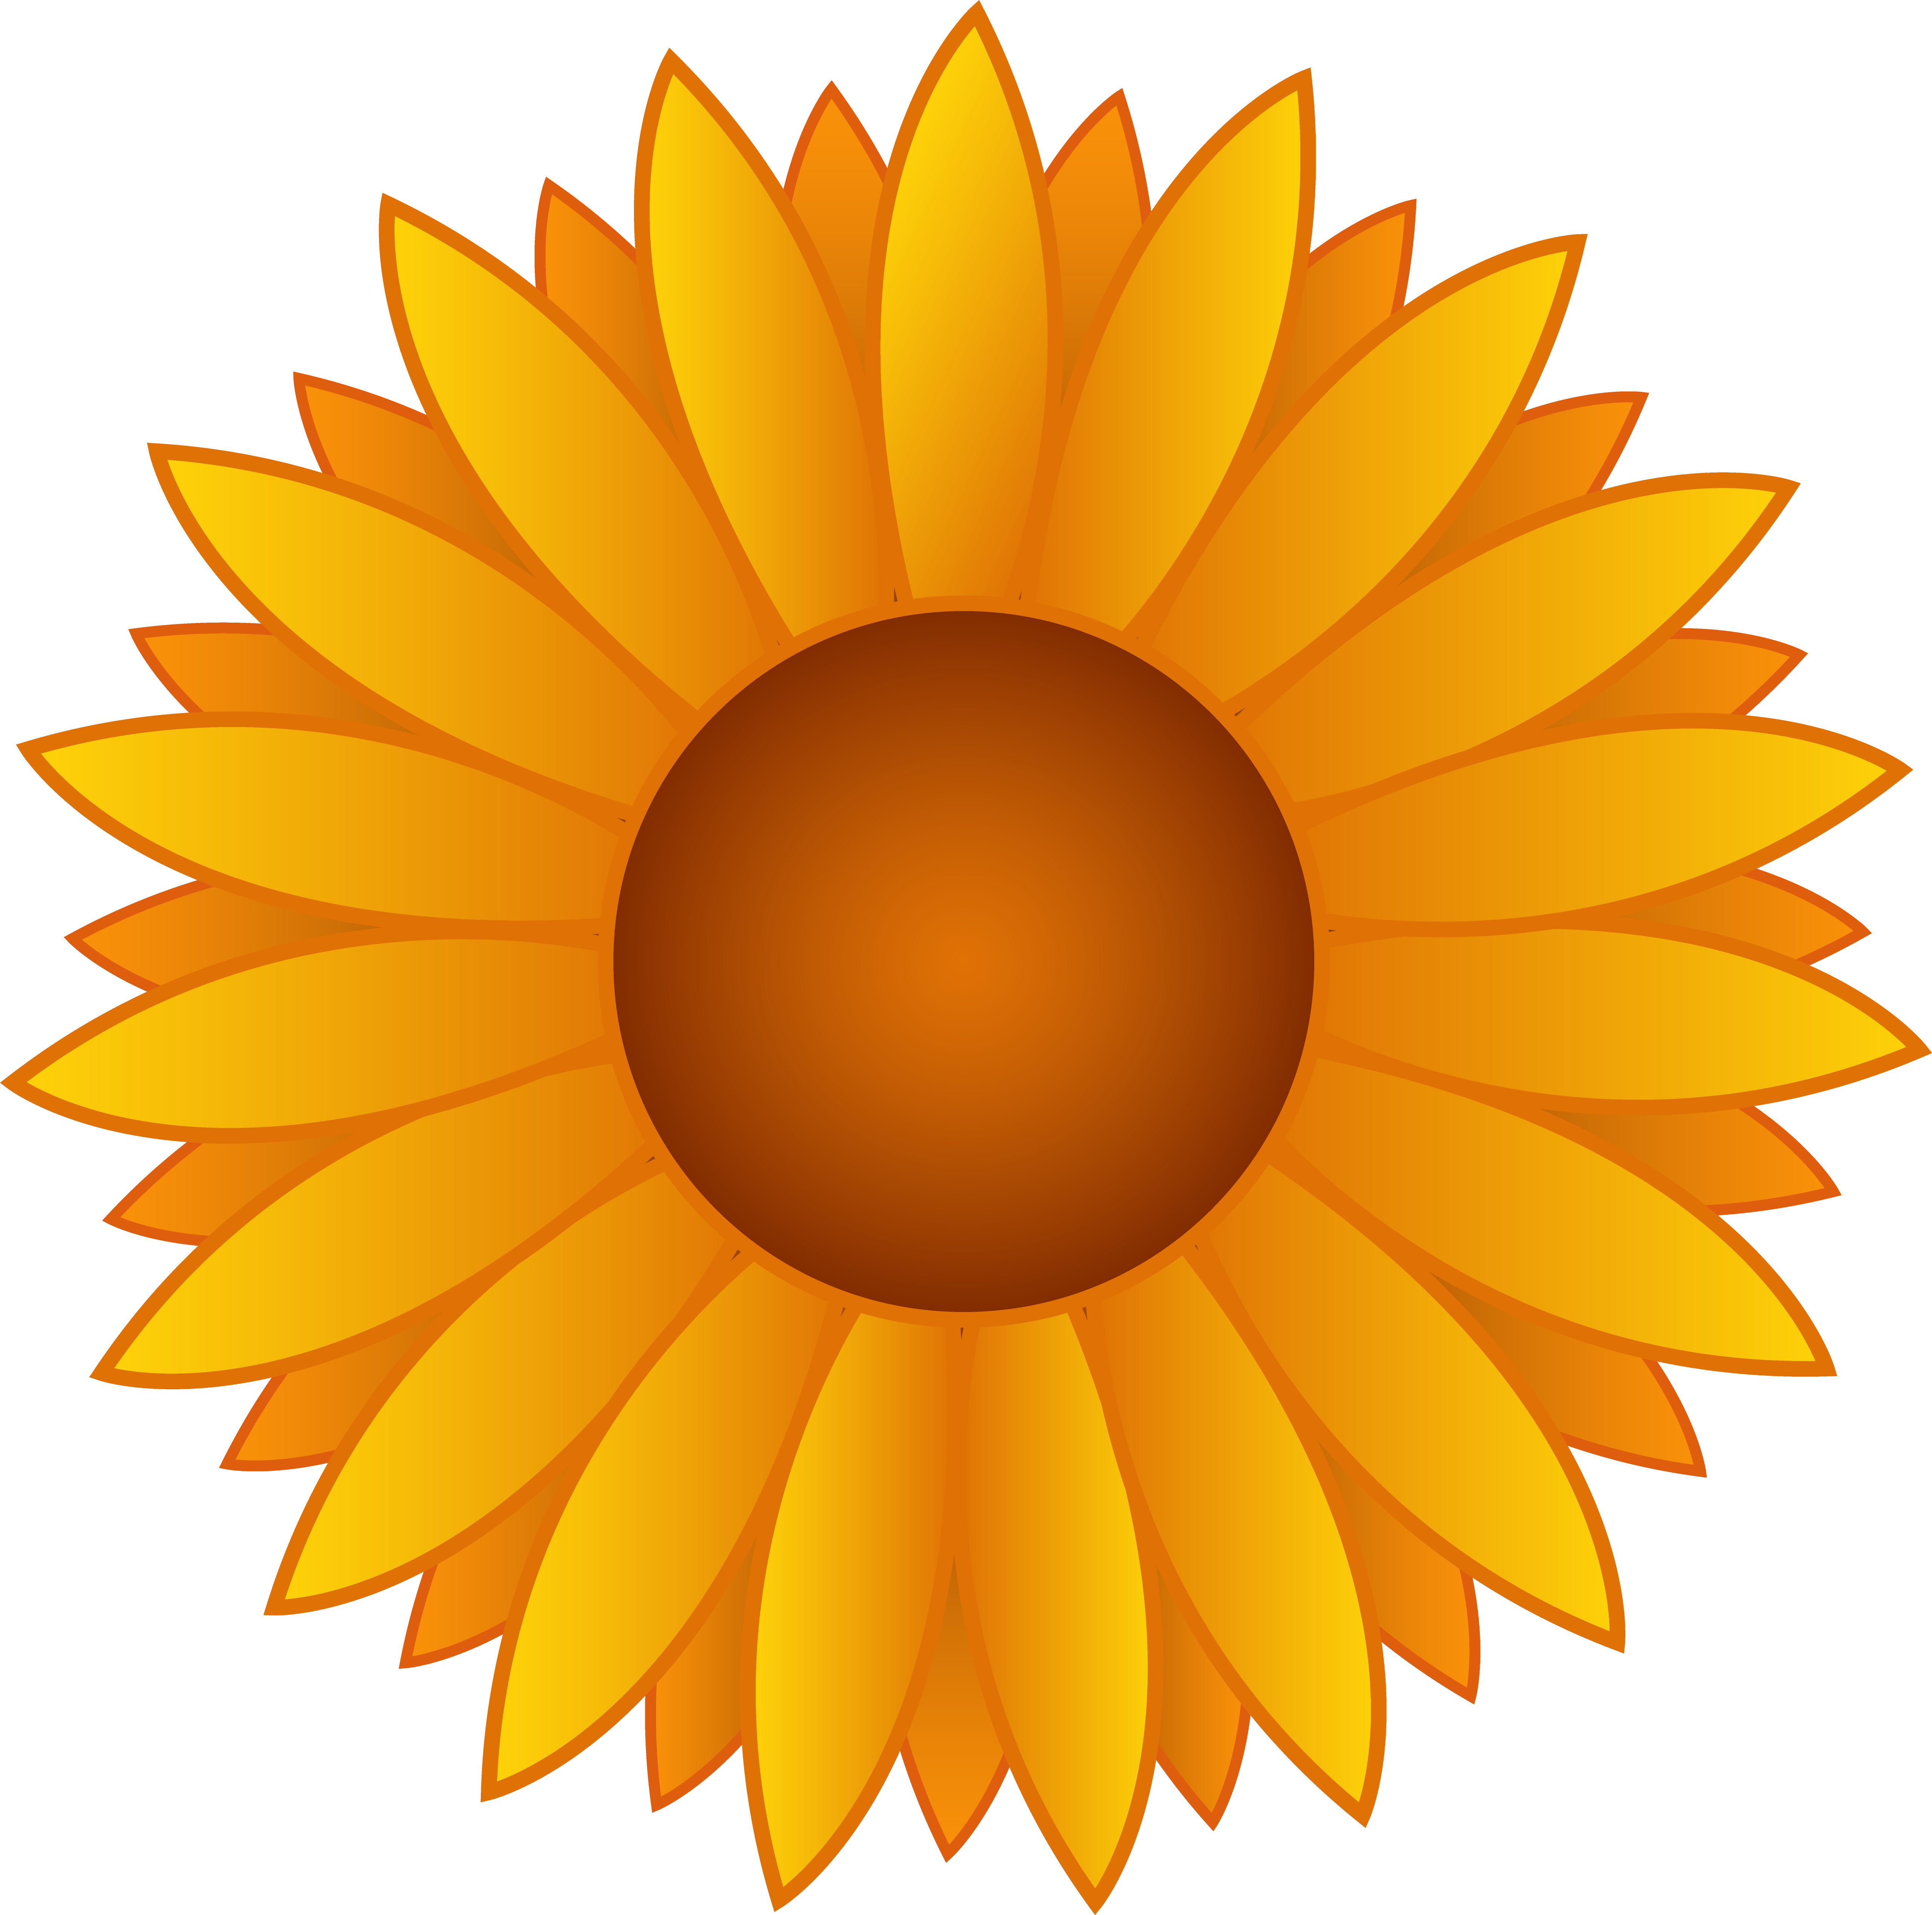 14 Sunflower Vector Art Images